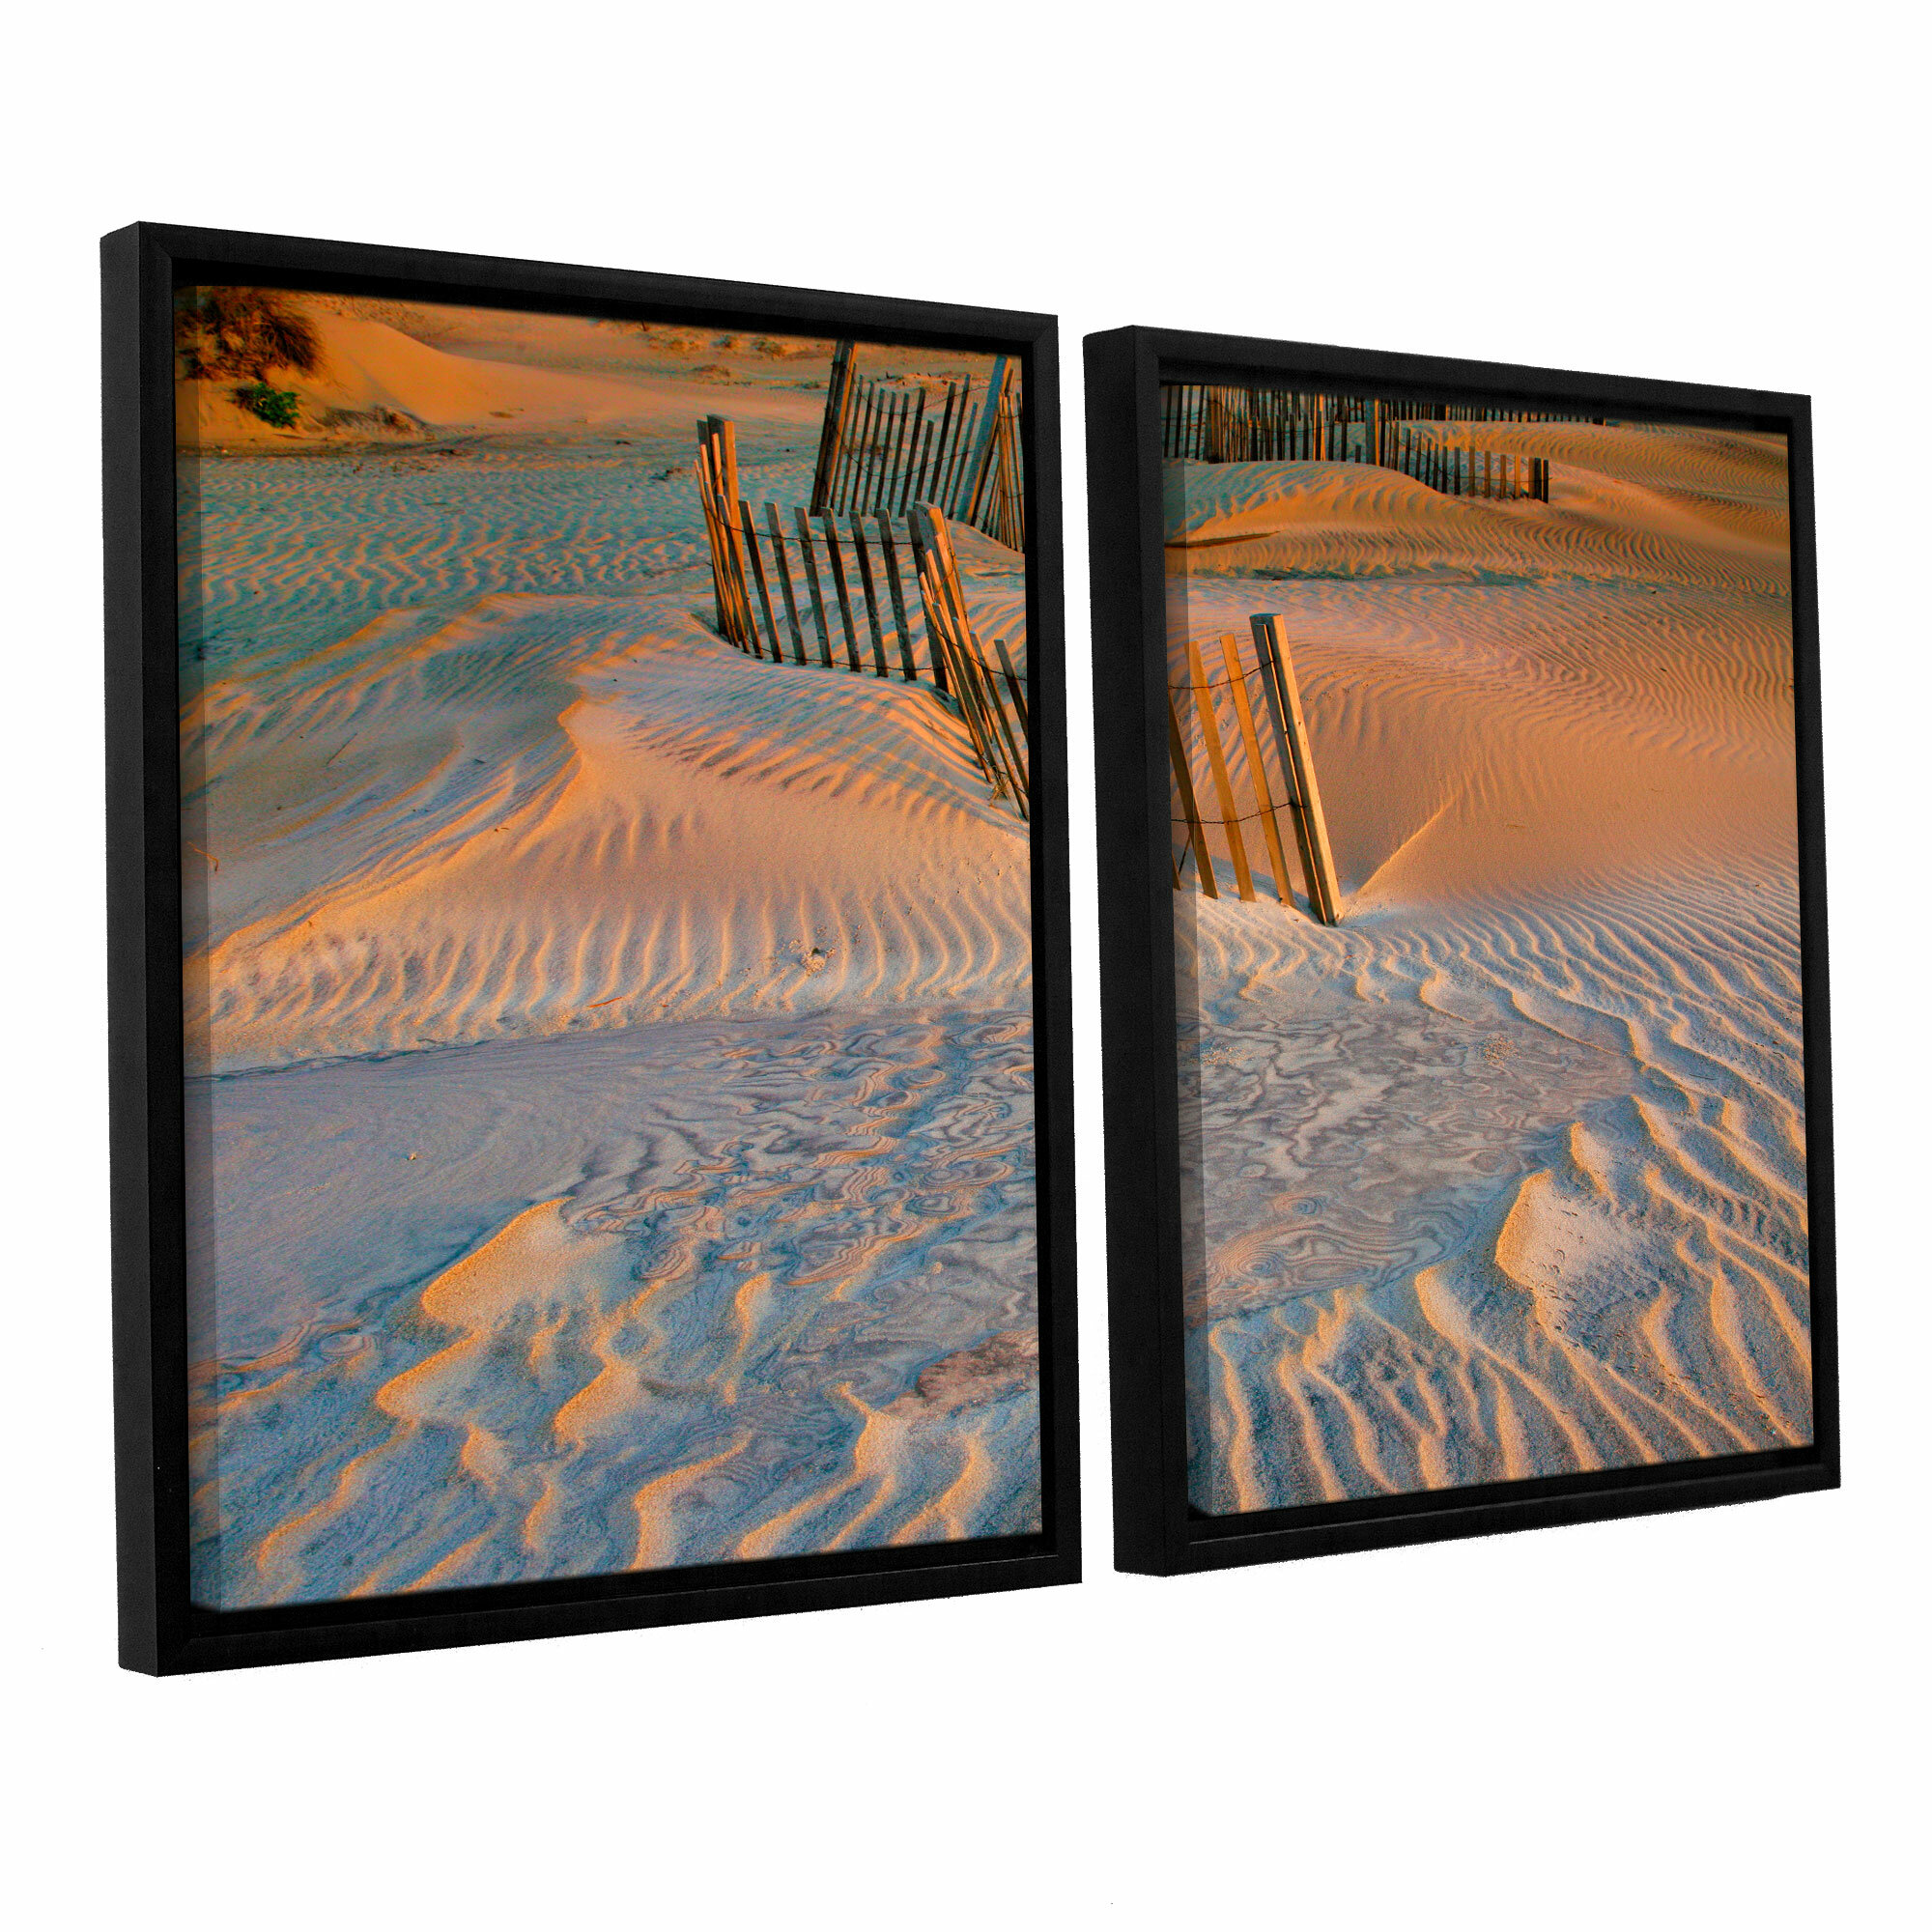 Artwall Dune Patterns Ii By Steve Ainsworth 2 Piece Framed Photographic Print On Wrapped Canvas Set Wayfair